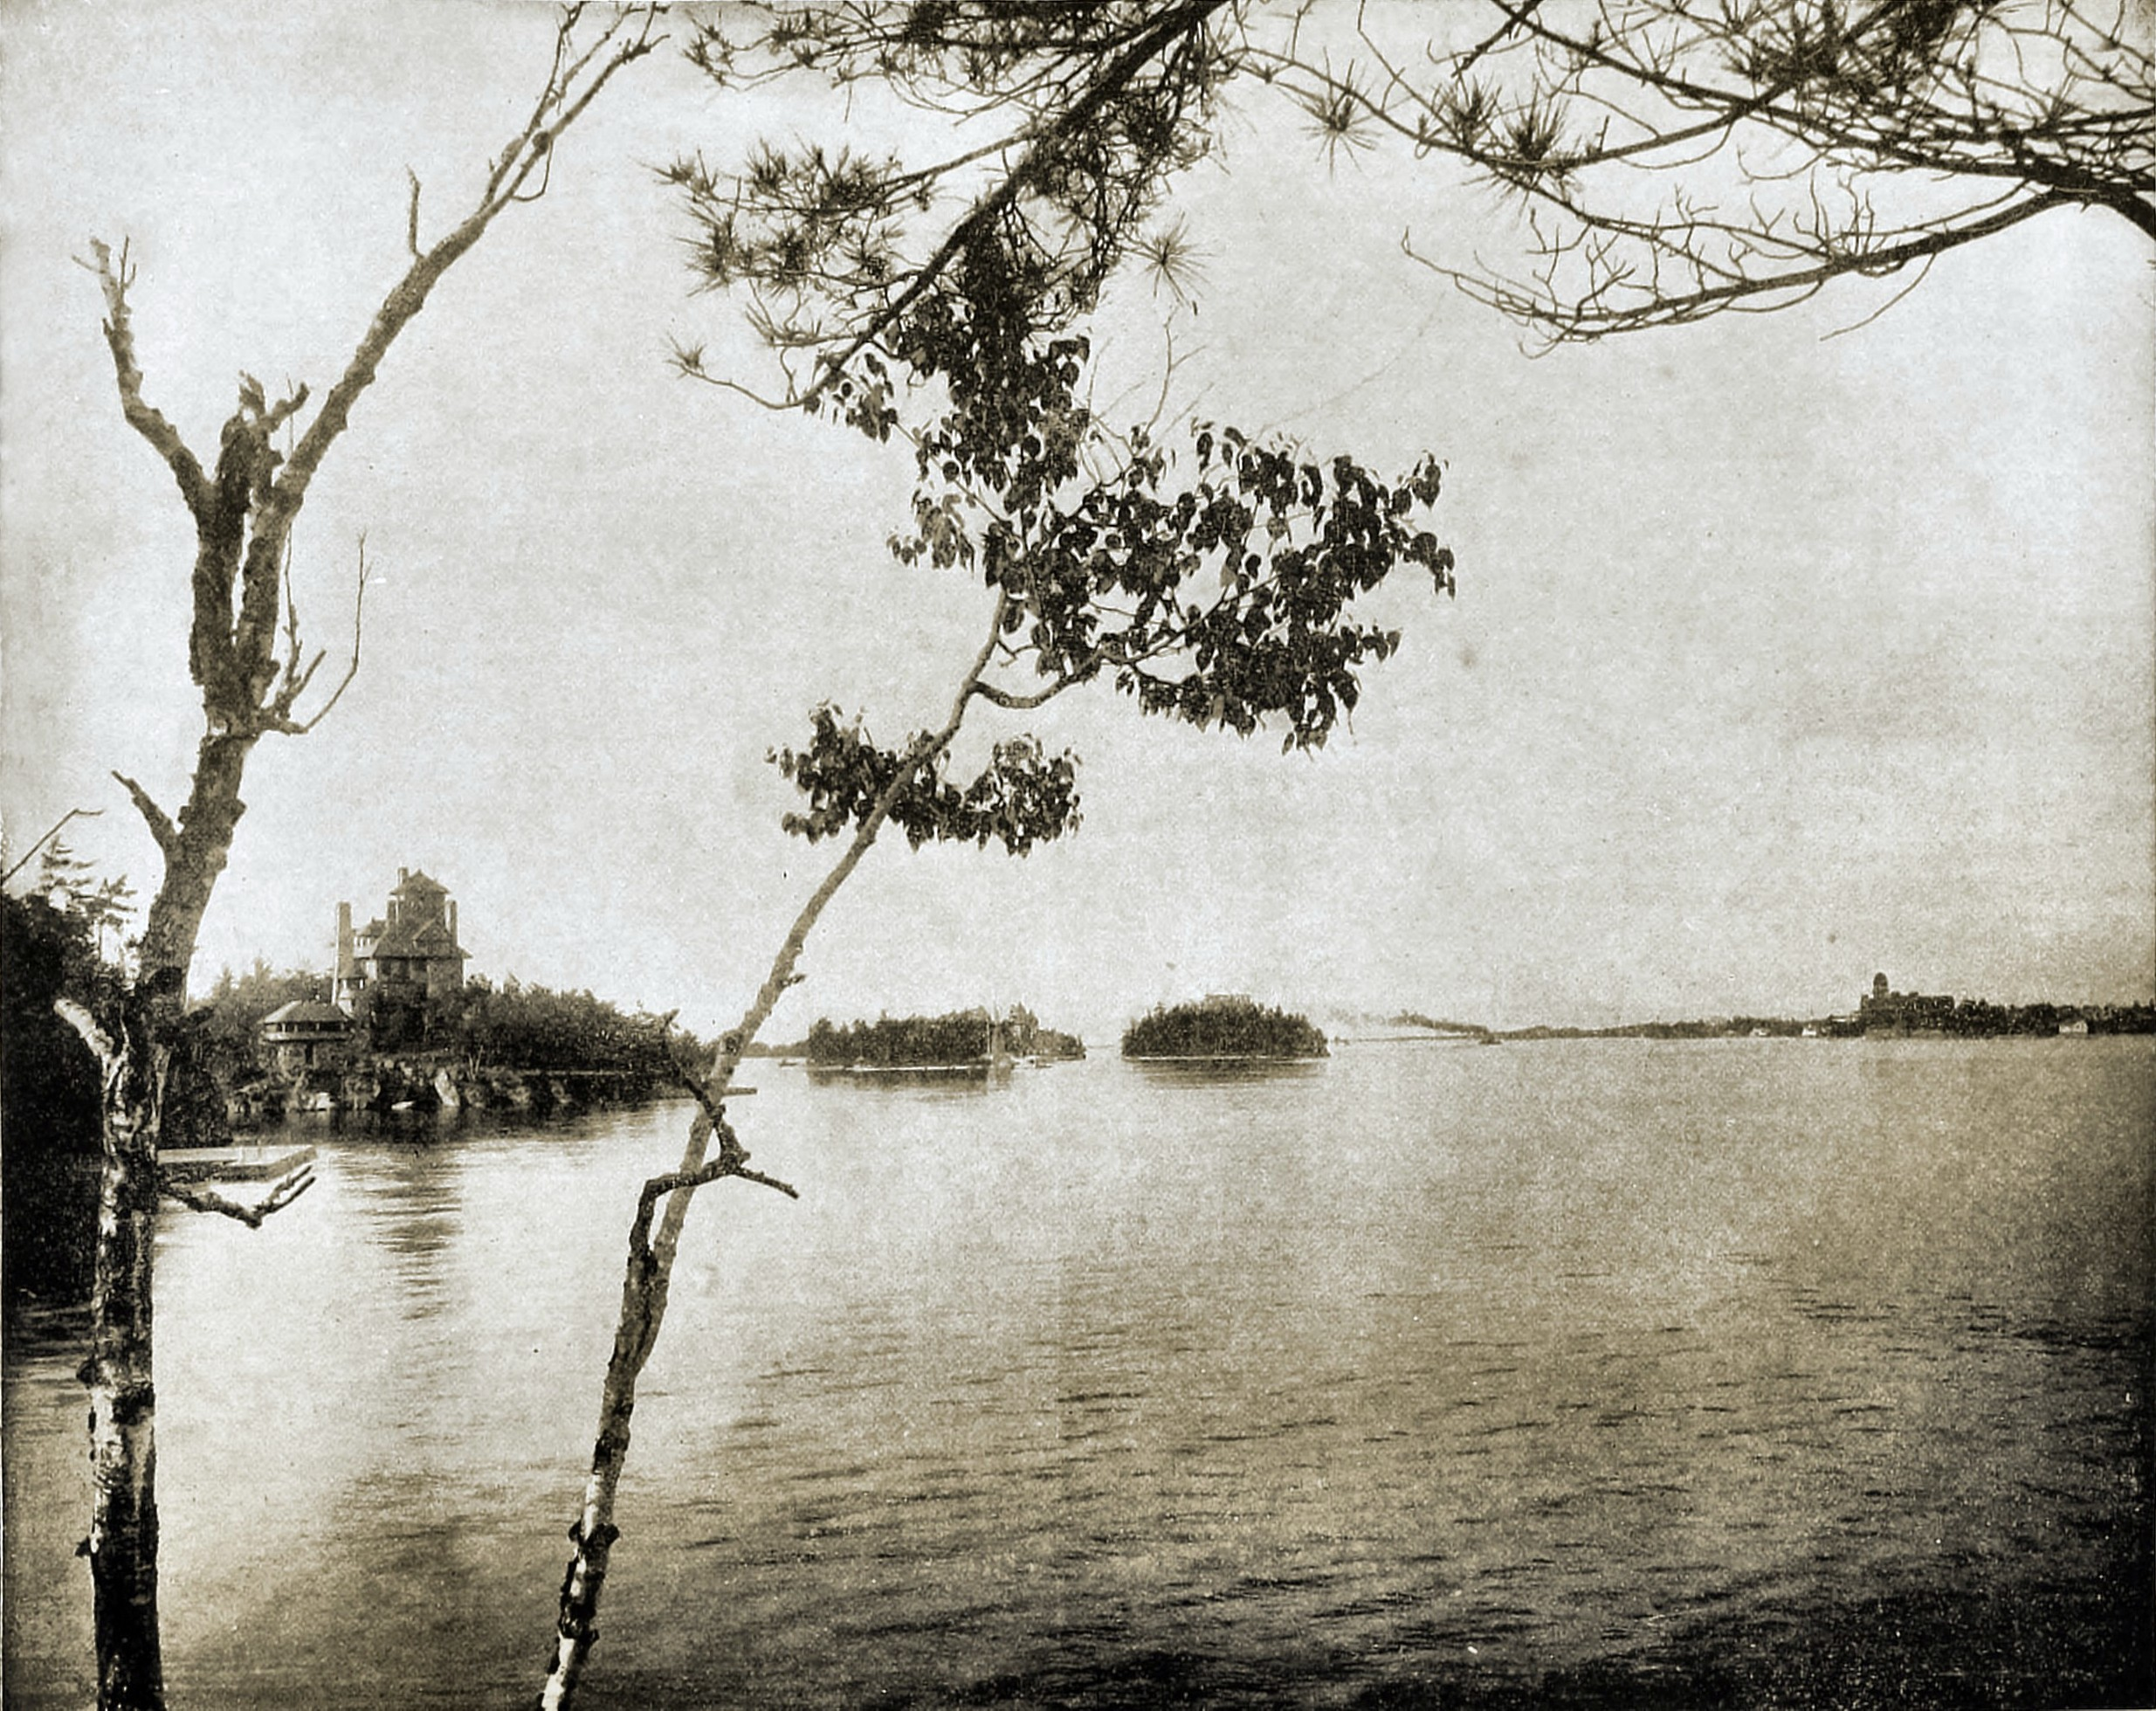 Thousand Islands St Lawrence River Canada about 1892